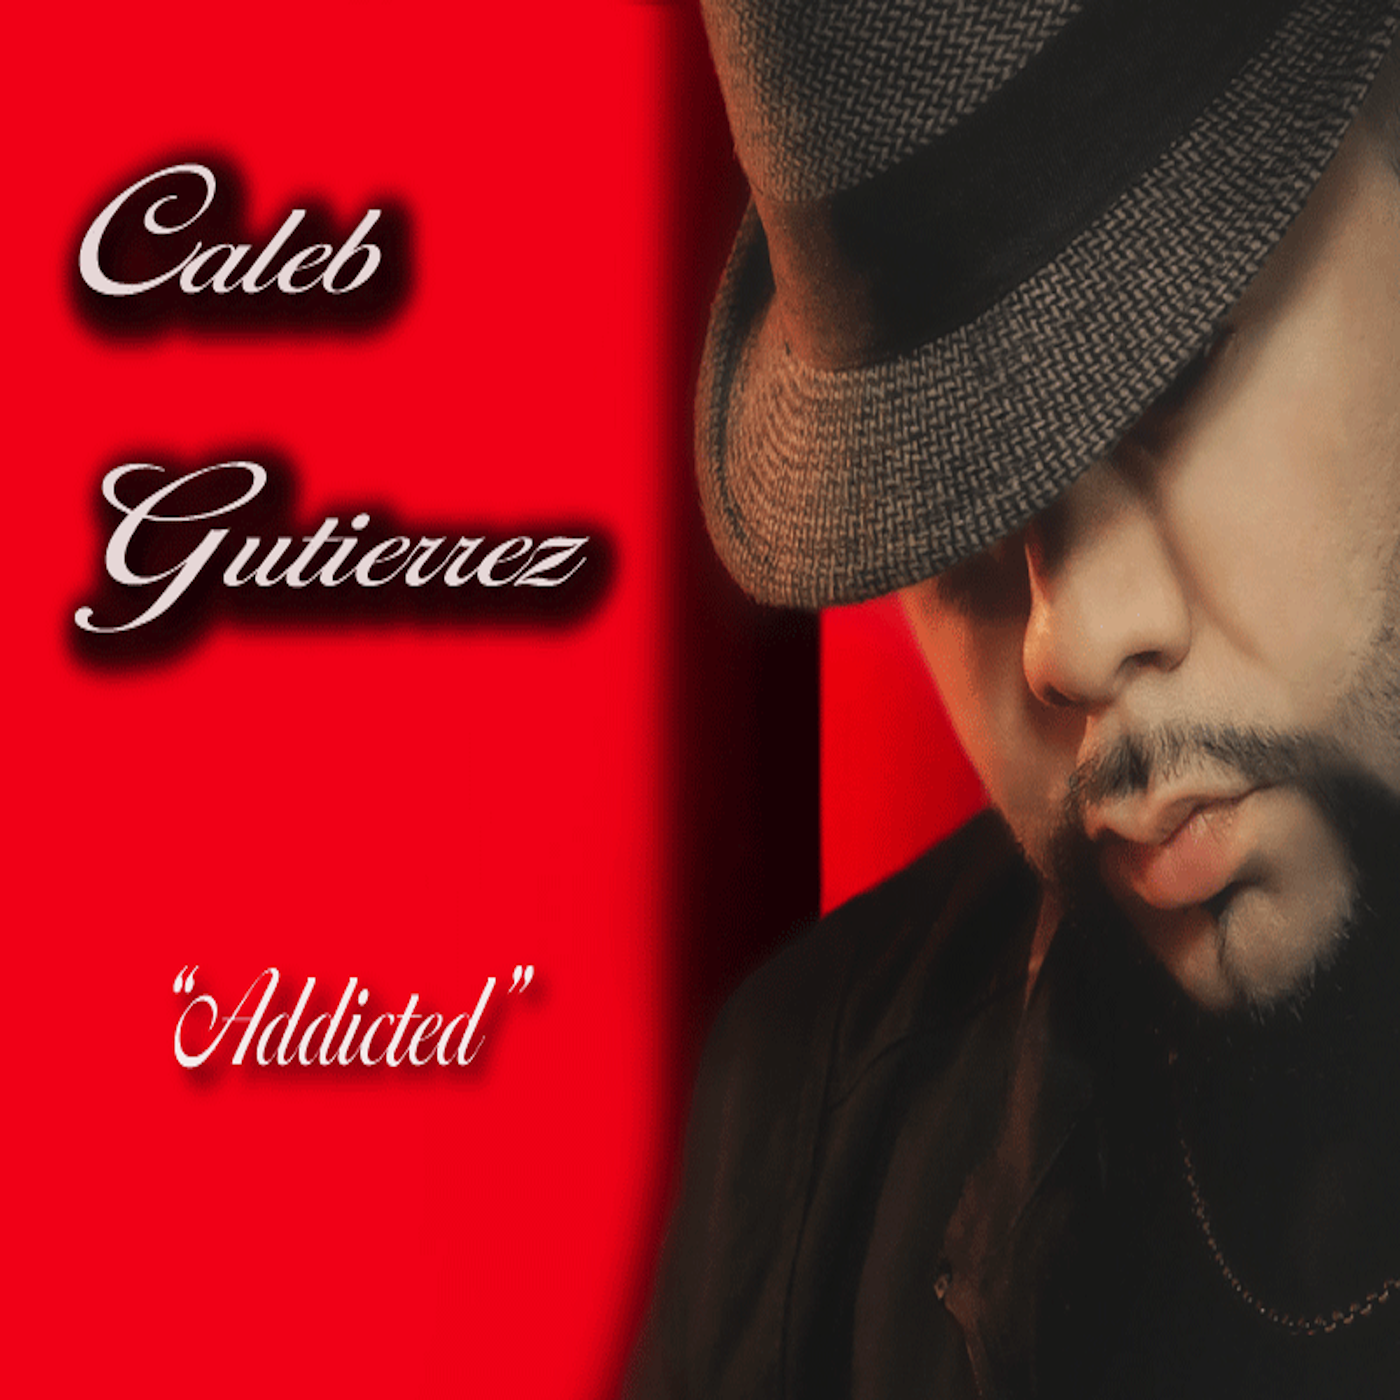 Caleb Gutierrez - Addicted (digital single)